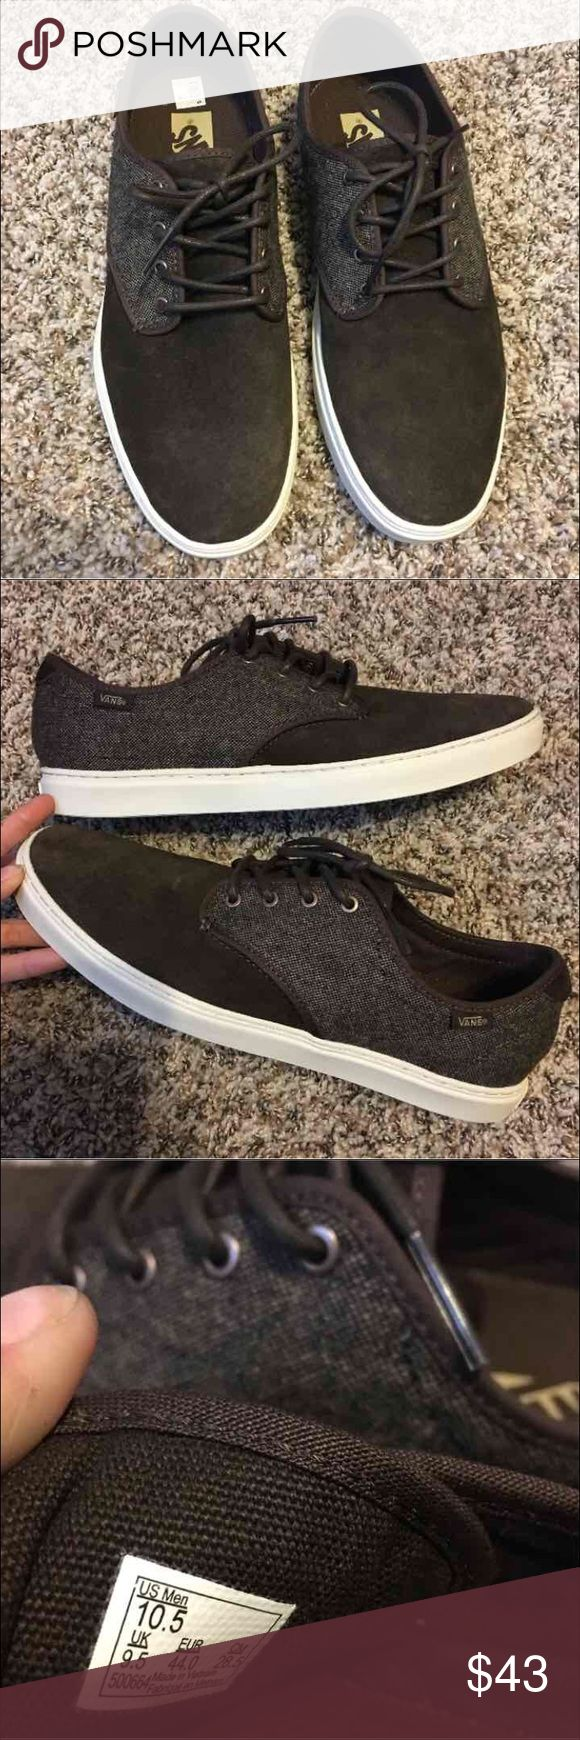 NWT Vans Suede Tweed Ludlow Low top OTW Collection Never worn! Comes with original box! Great condition as pictured! Real Suede!   This is a dead stock color style! No longer in production! OTW Collection Street Style   Originally priced $100! Over 55% OFF!   RARE FIND IN UNWORN CONDITION!   BUNDLE FOR EVEN MORE SAVINGS!  Check out the rest of my page for MORE Vans shoe Styles for sale! Vans Shoes